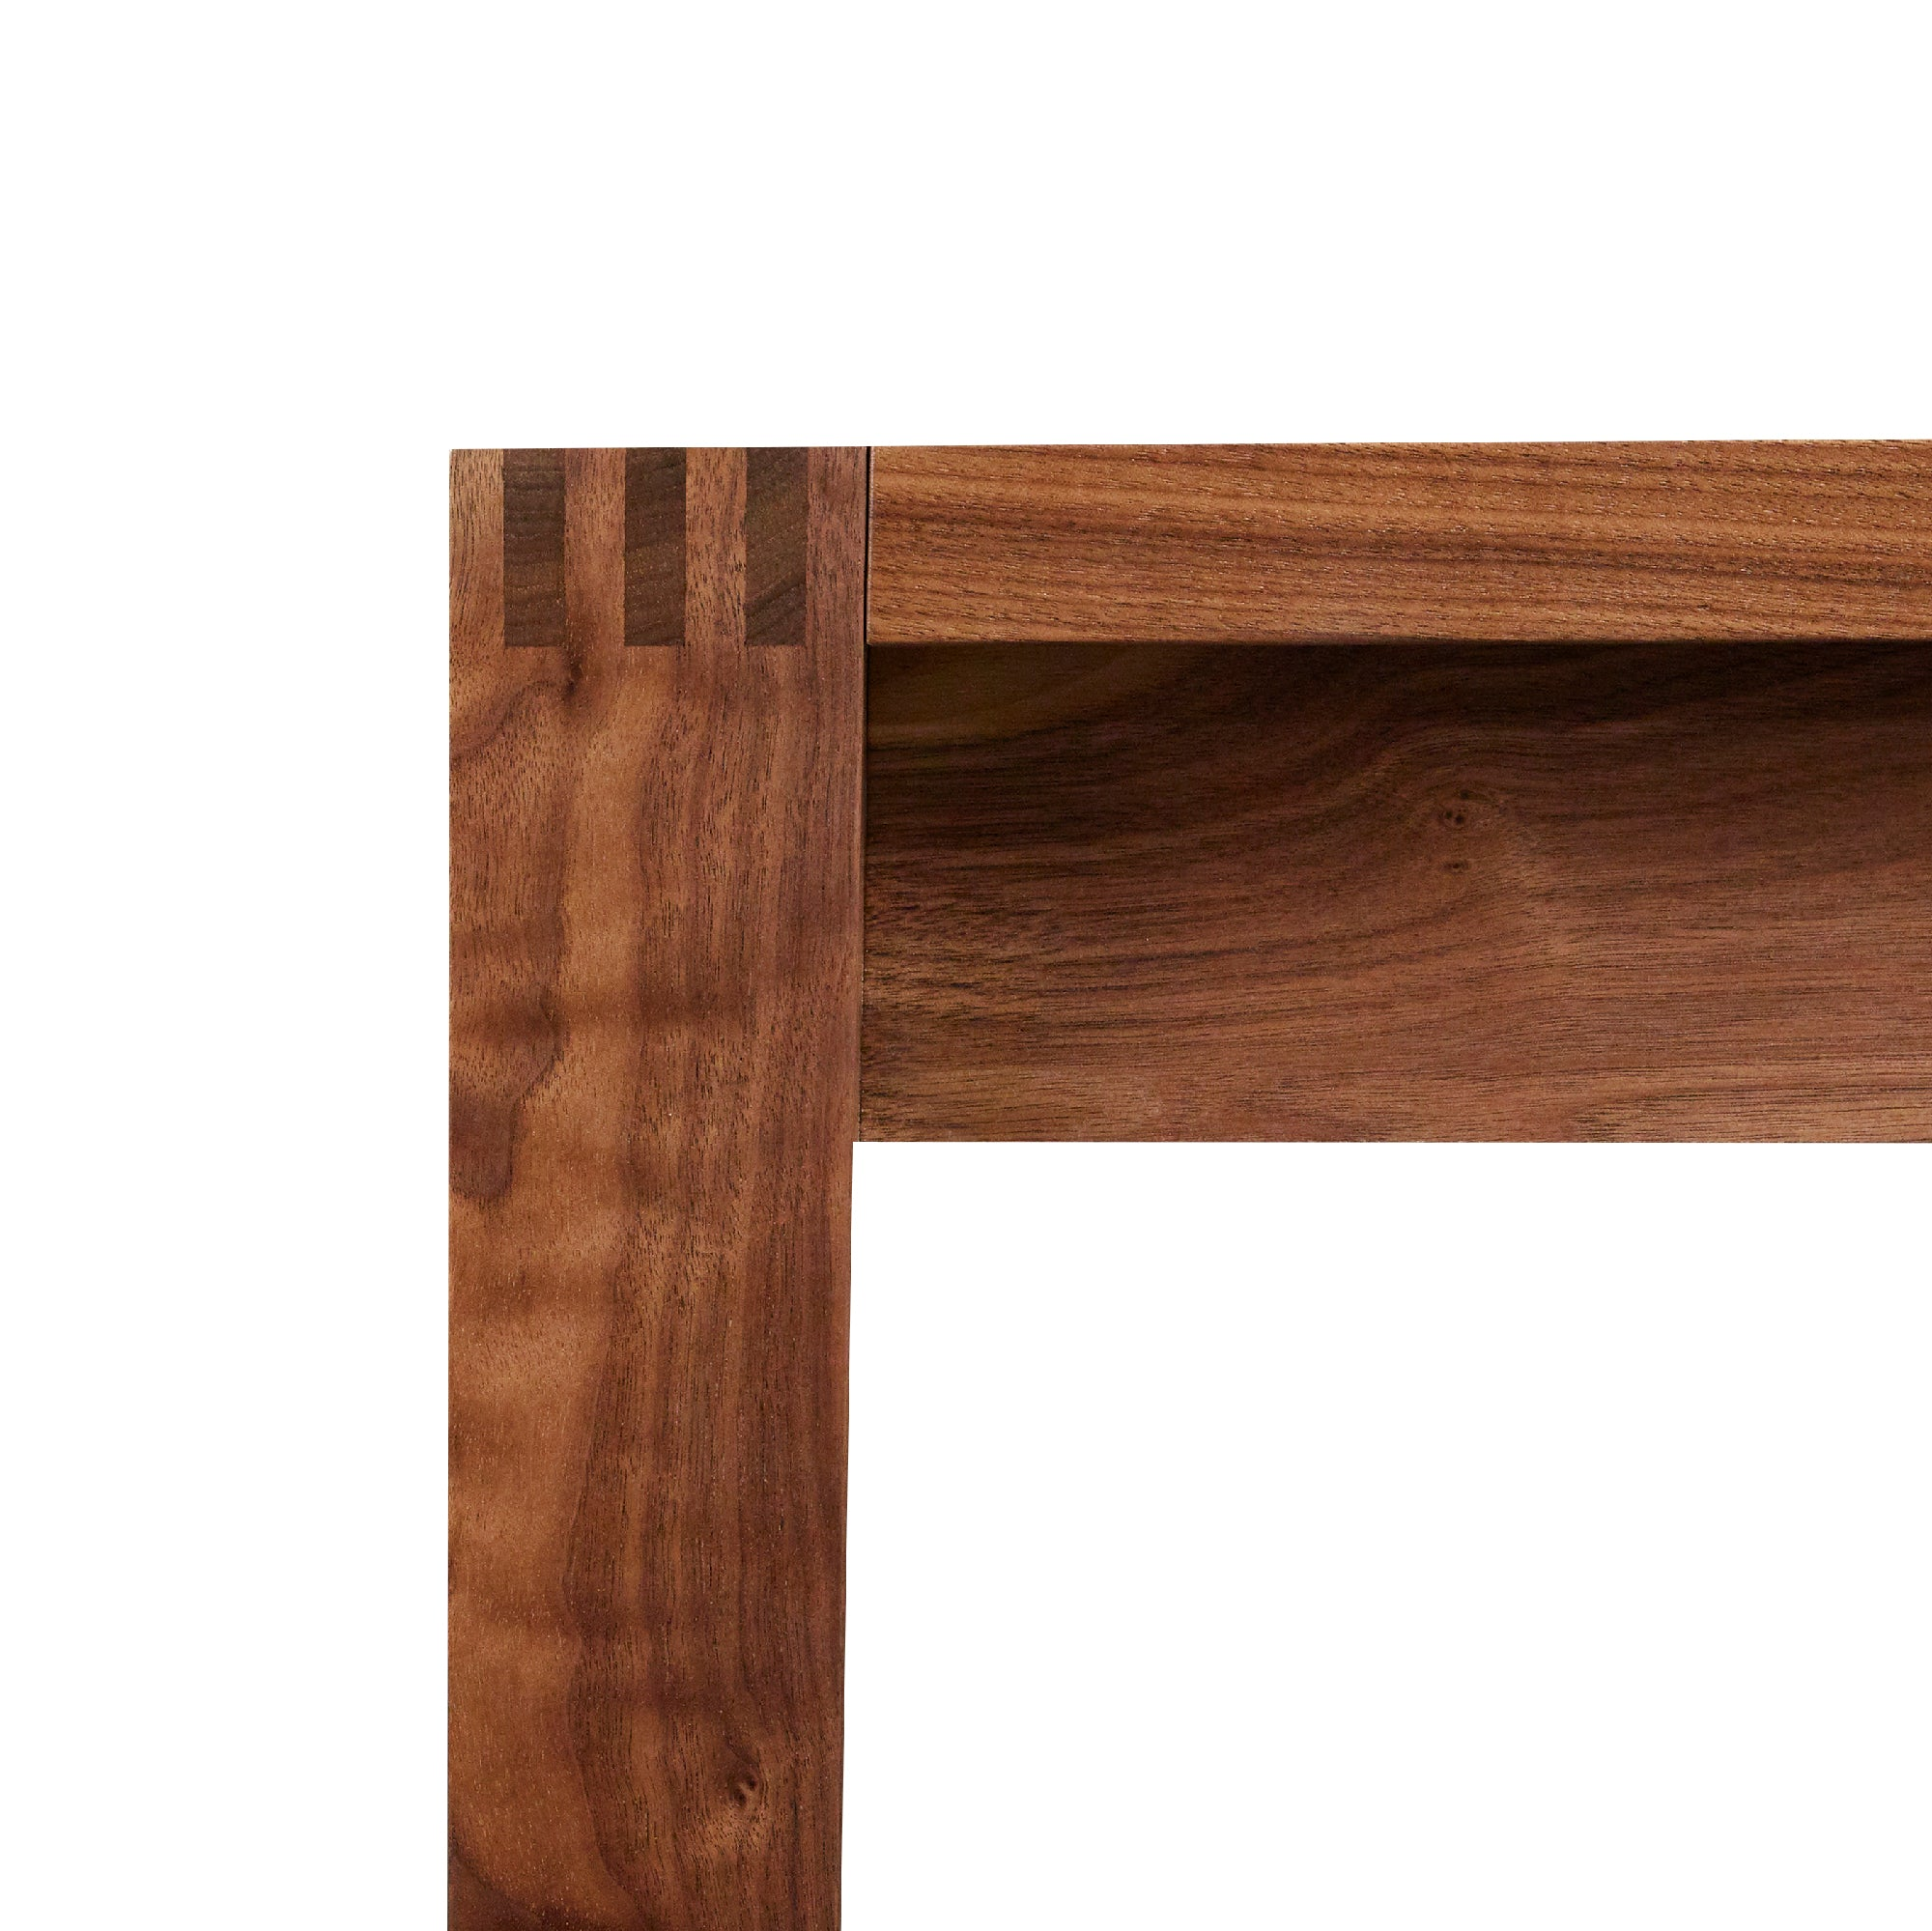 Finger joinery in solid walnut on the Harbor Dining Table